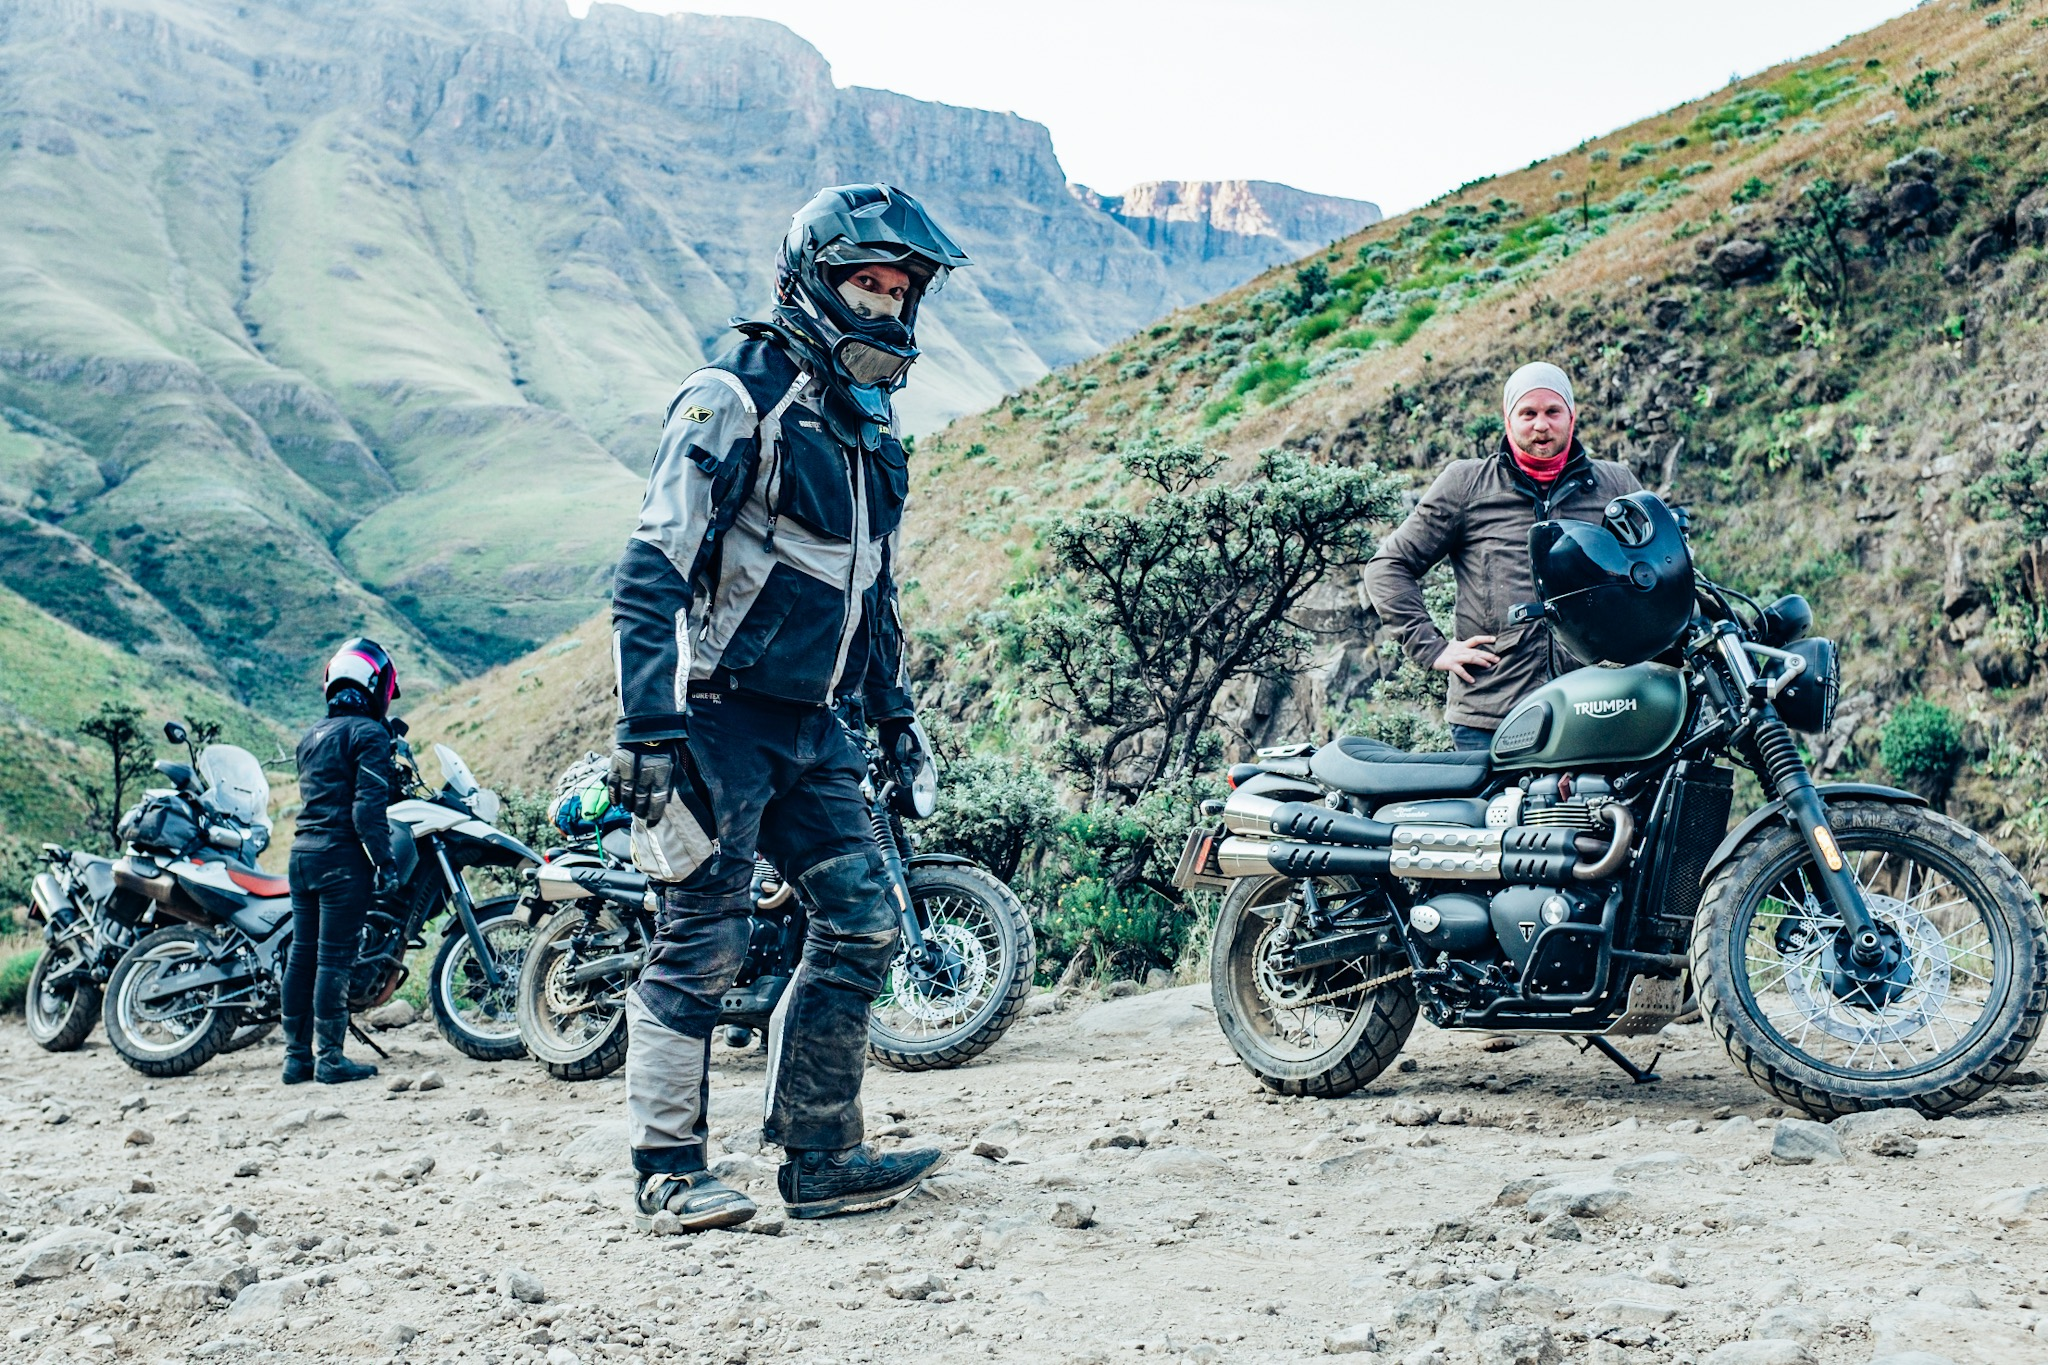 Our team doctor exhausted after helping out fellow riders pick up their bikes on the Sani Pass Moto adventure with Bonafide Moto Co.